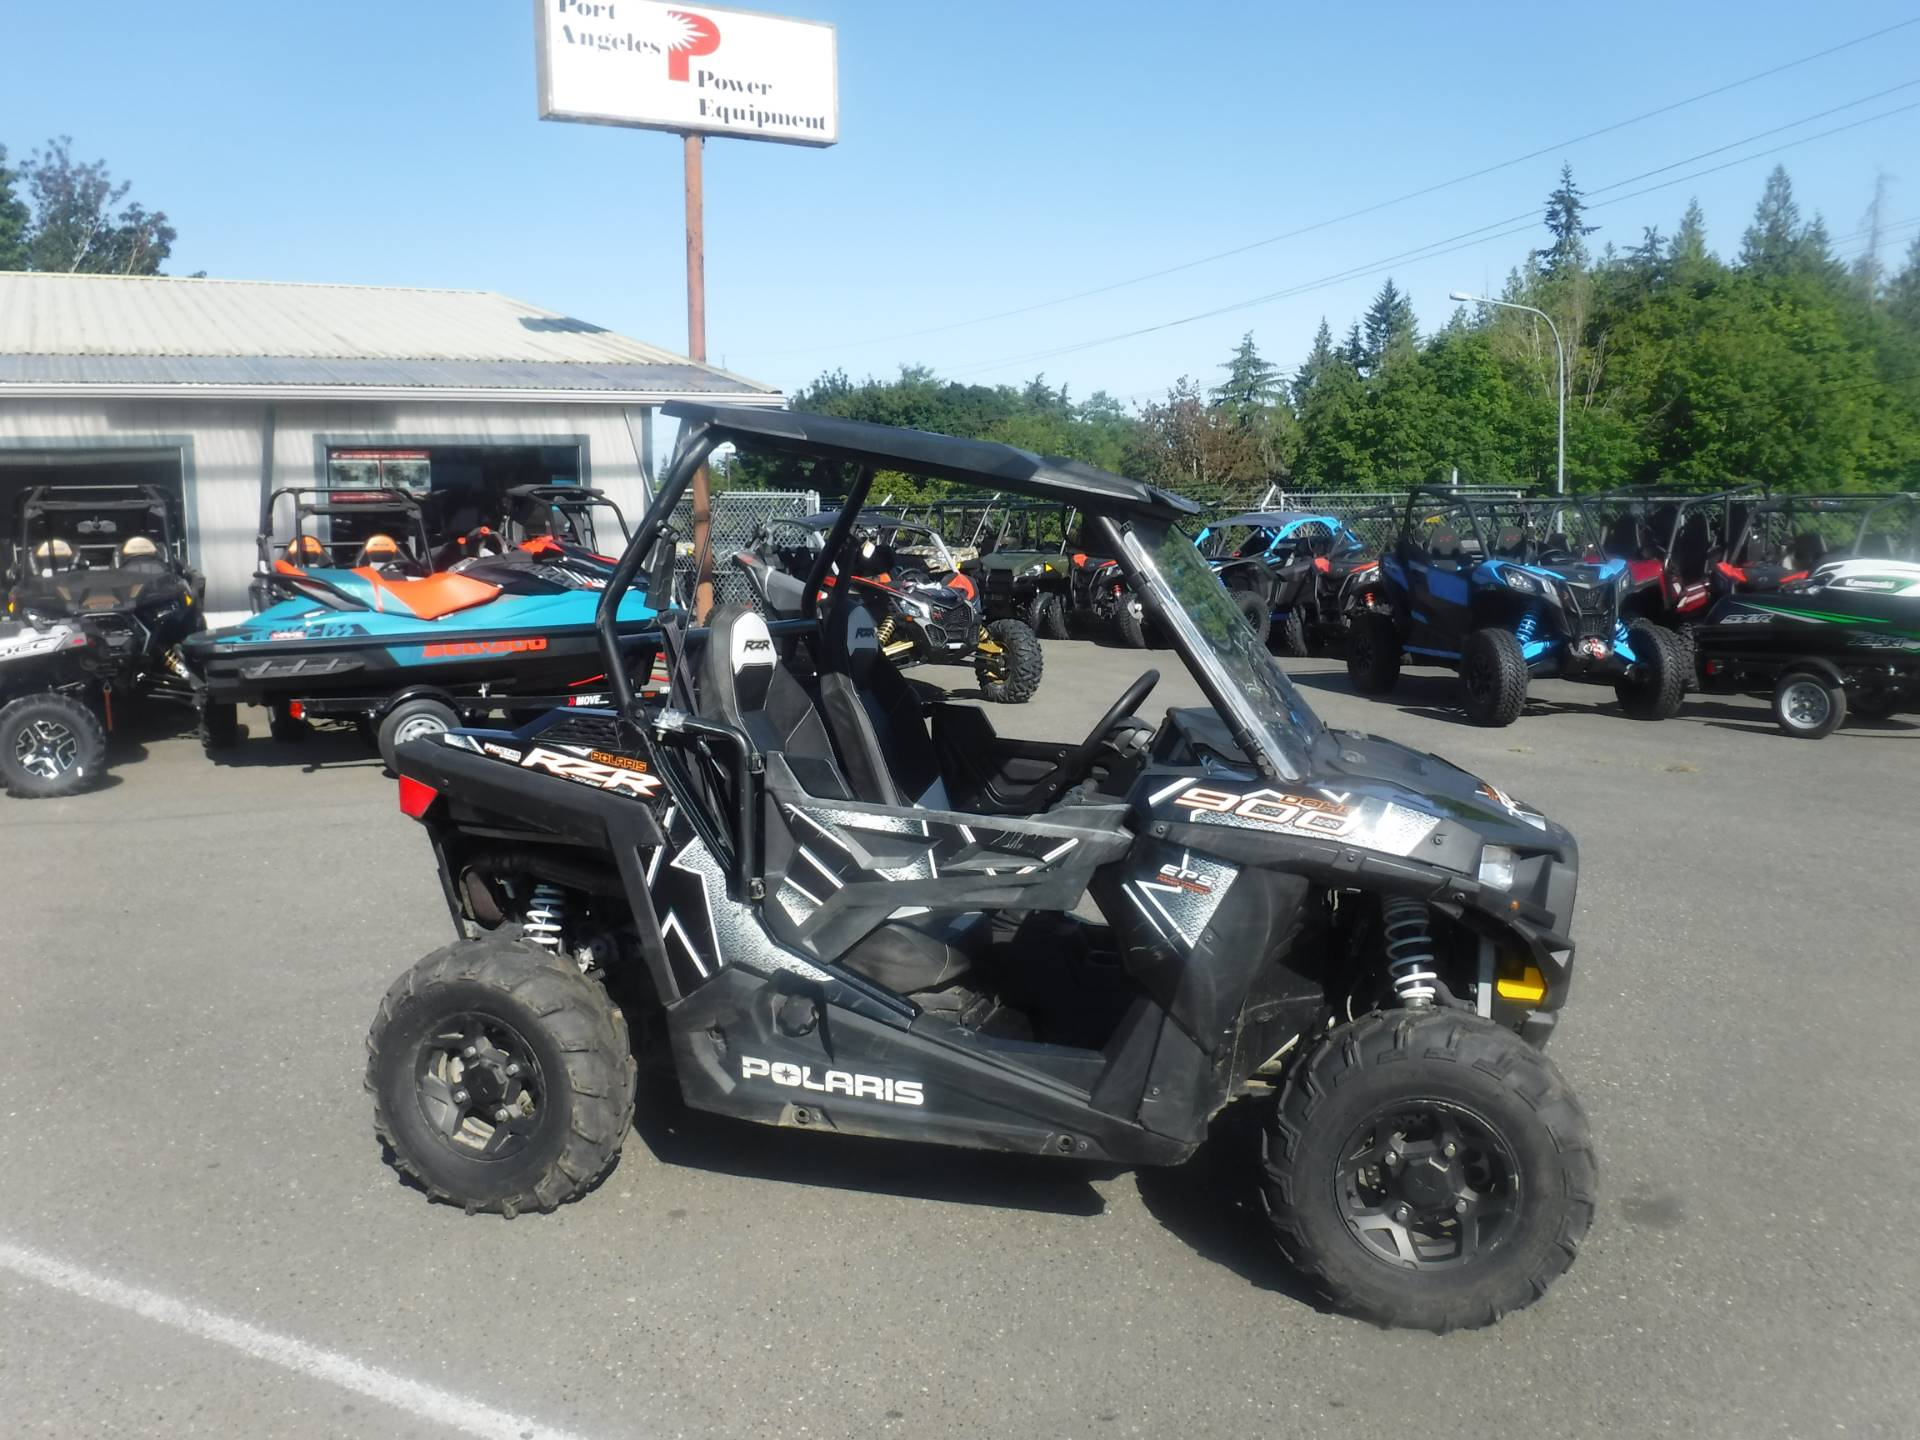 2017 Polaris RZR 900 EPS in Port Angeles, Washington - Photo 1